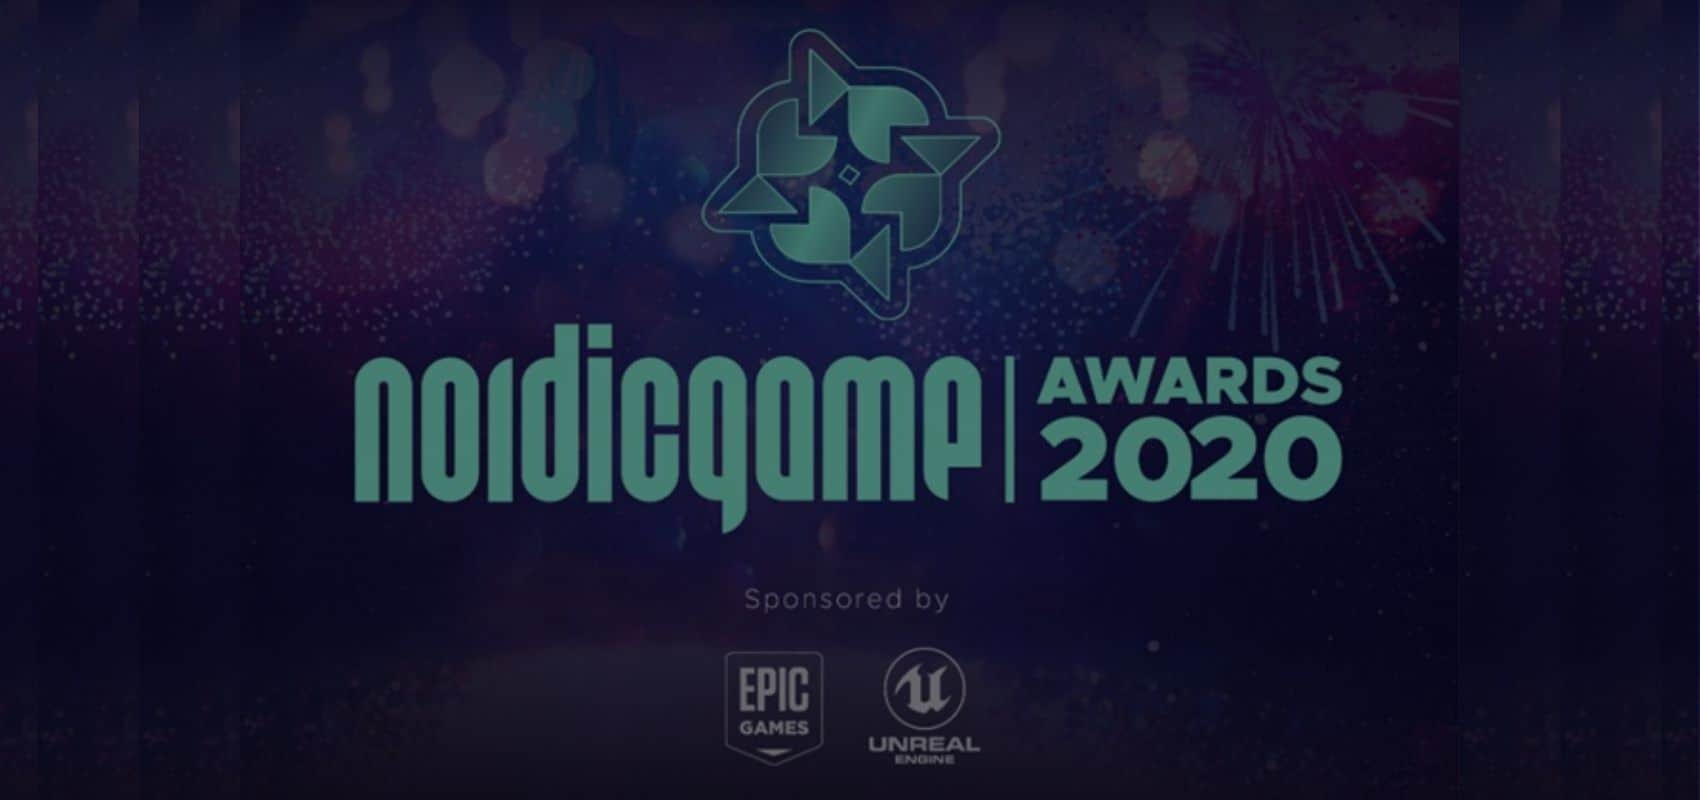 Nordic Game Awards 2020 winners revealed